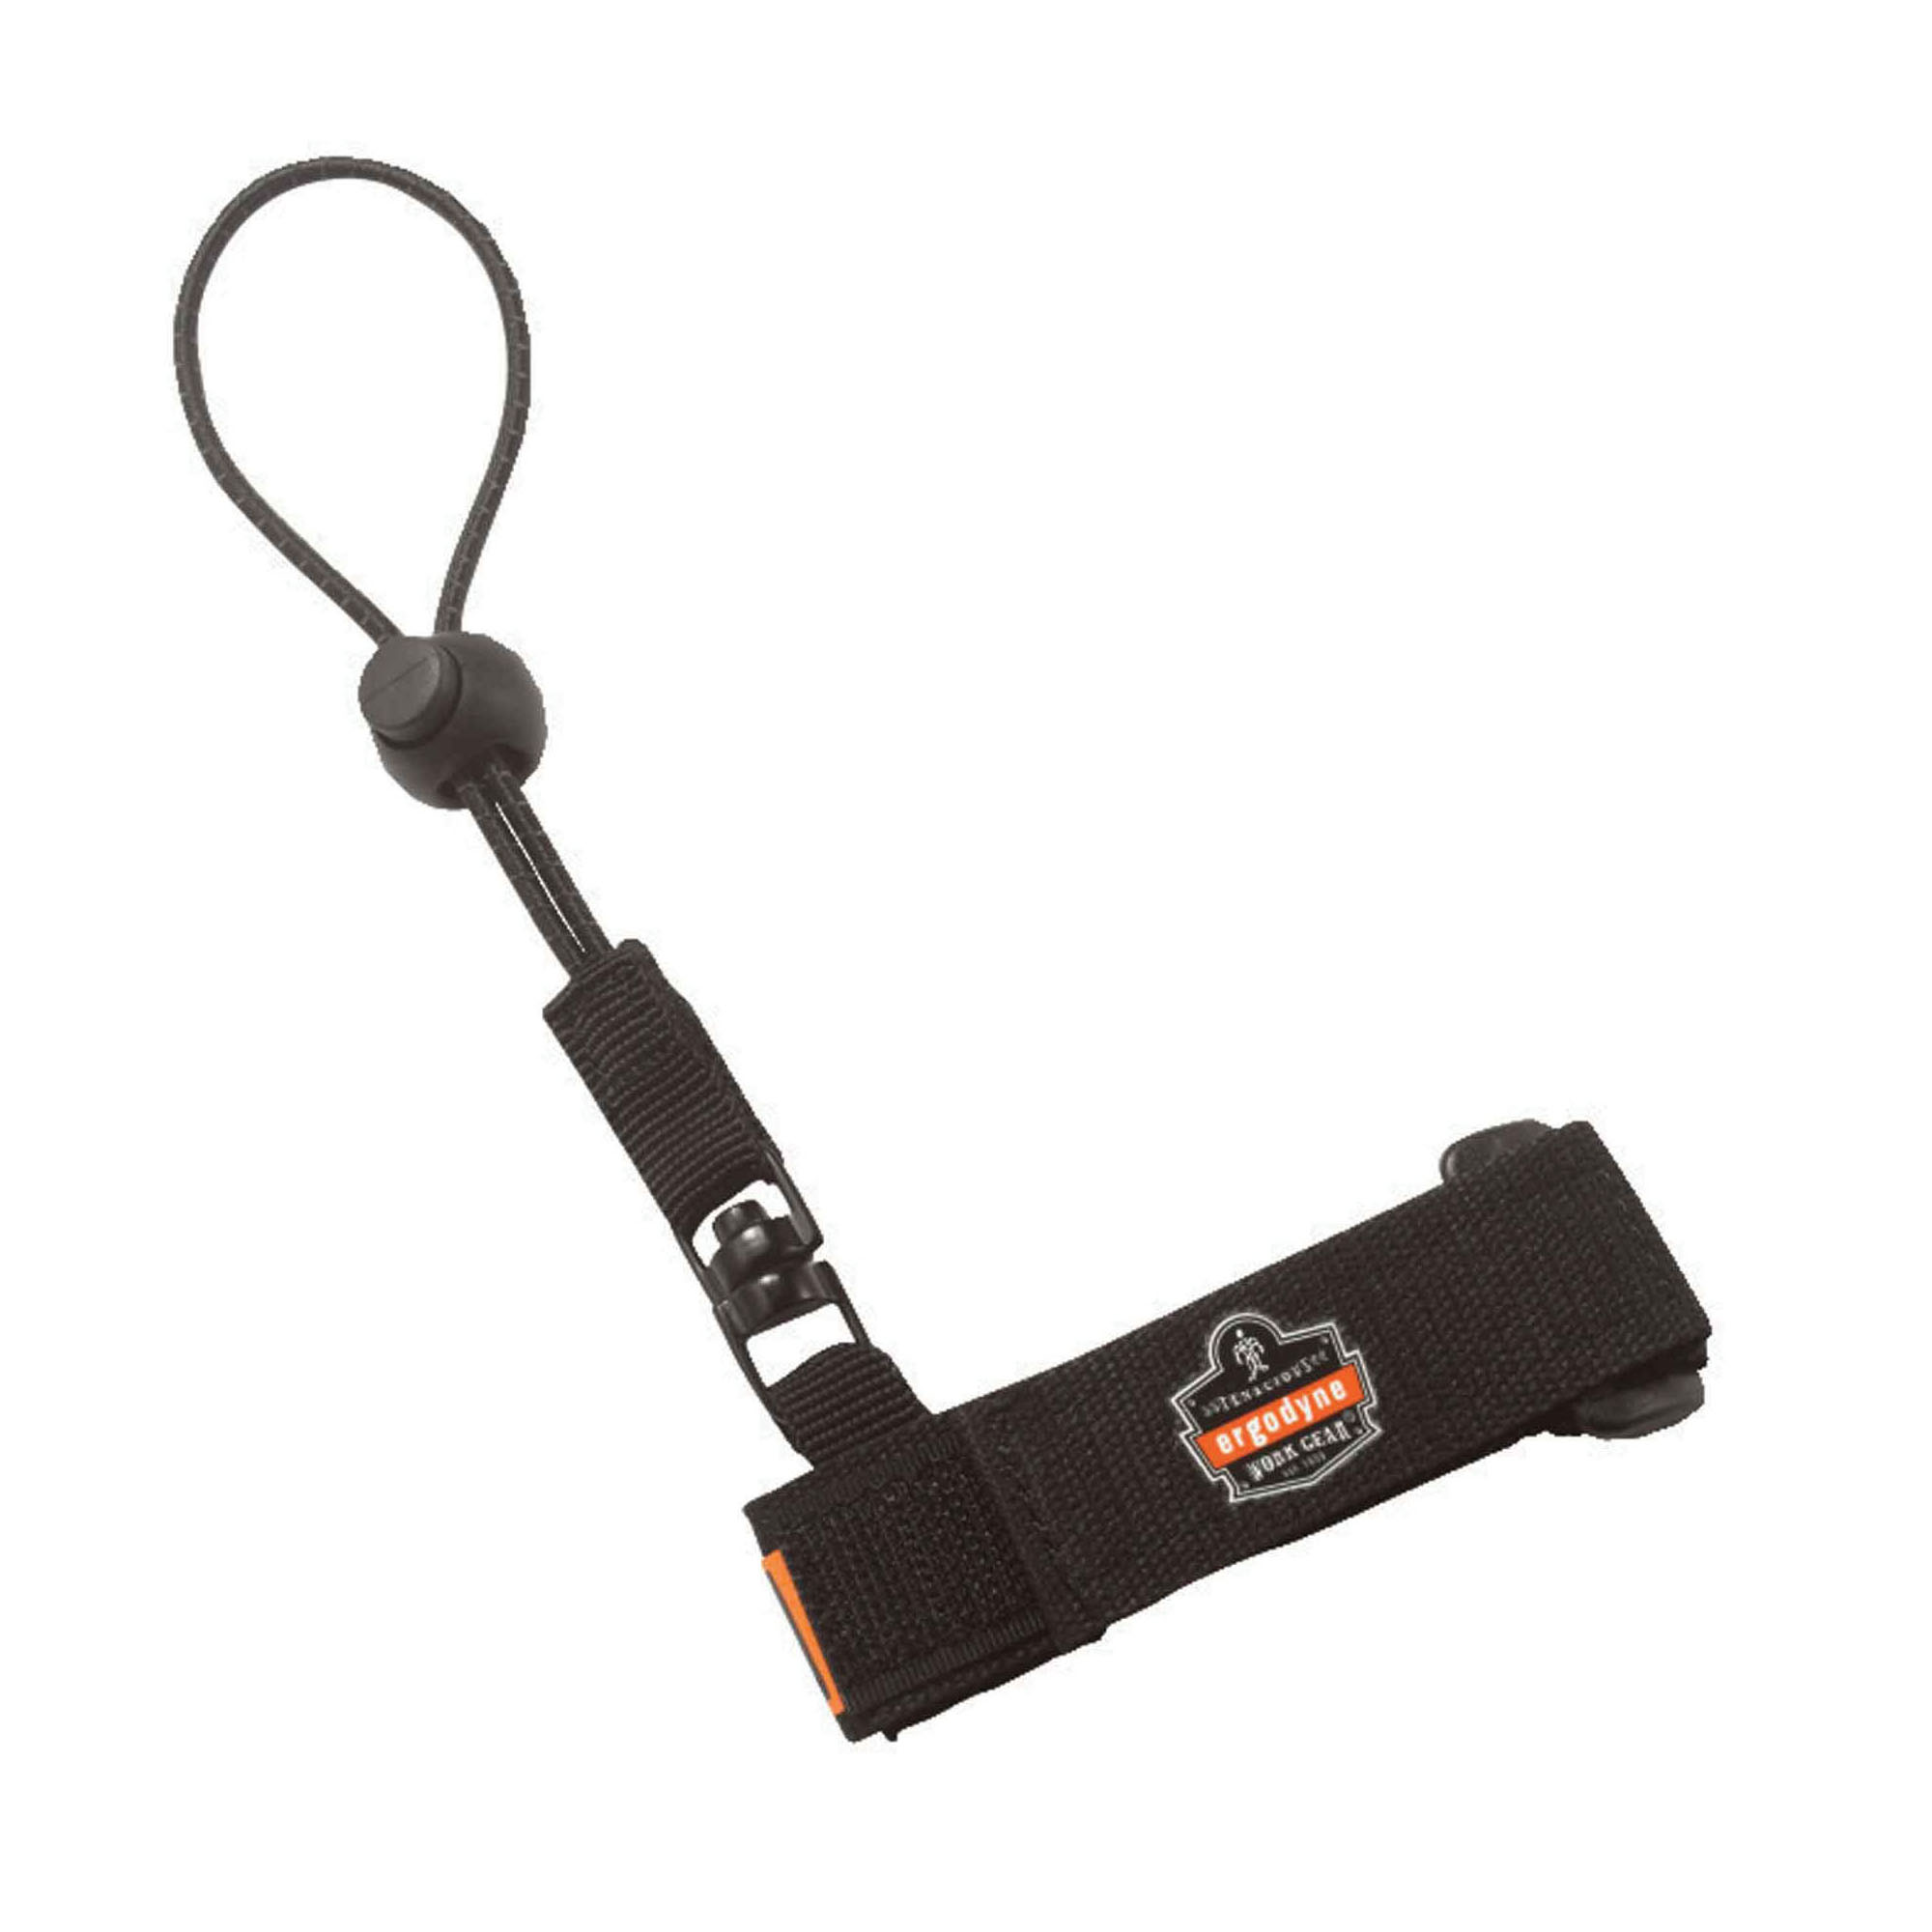 Squids® 19042 3115 Wrist Tool Lanyard, 2 lb Load Capacity, 7-1/2 in L, Polyester Webbing Line, 1 Legs, Choke-Off Loop Harness Connection Hook, Specifications Met: ANSI/ISEA 121-2018